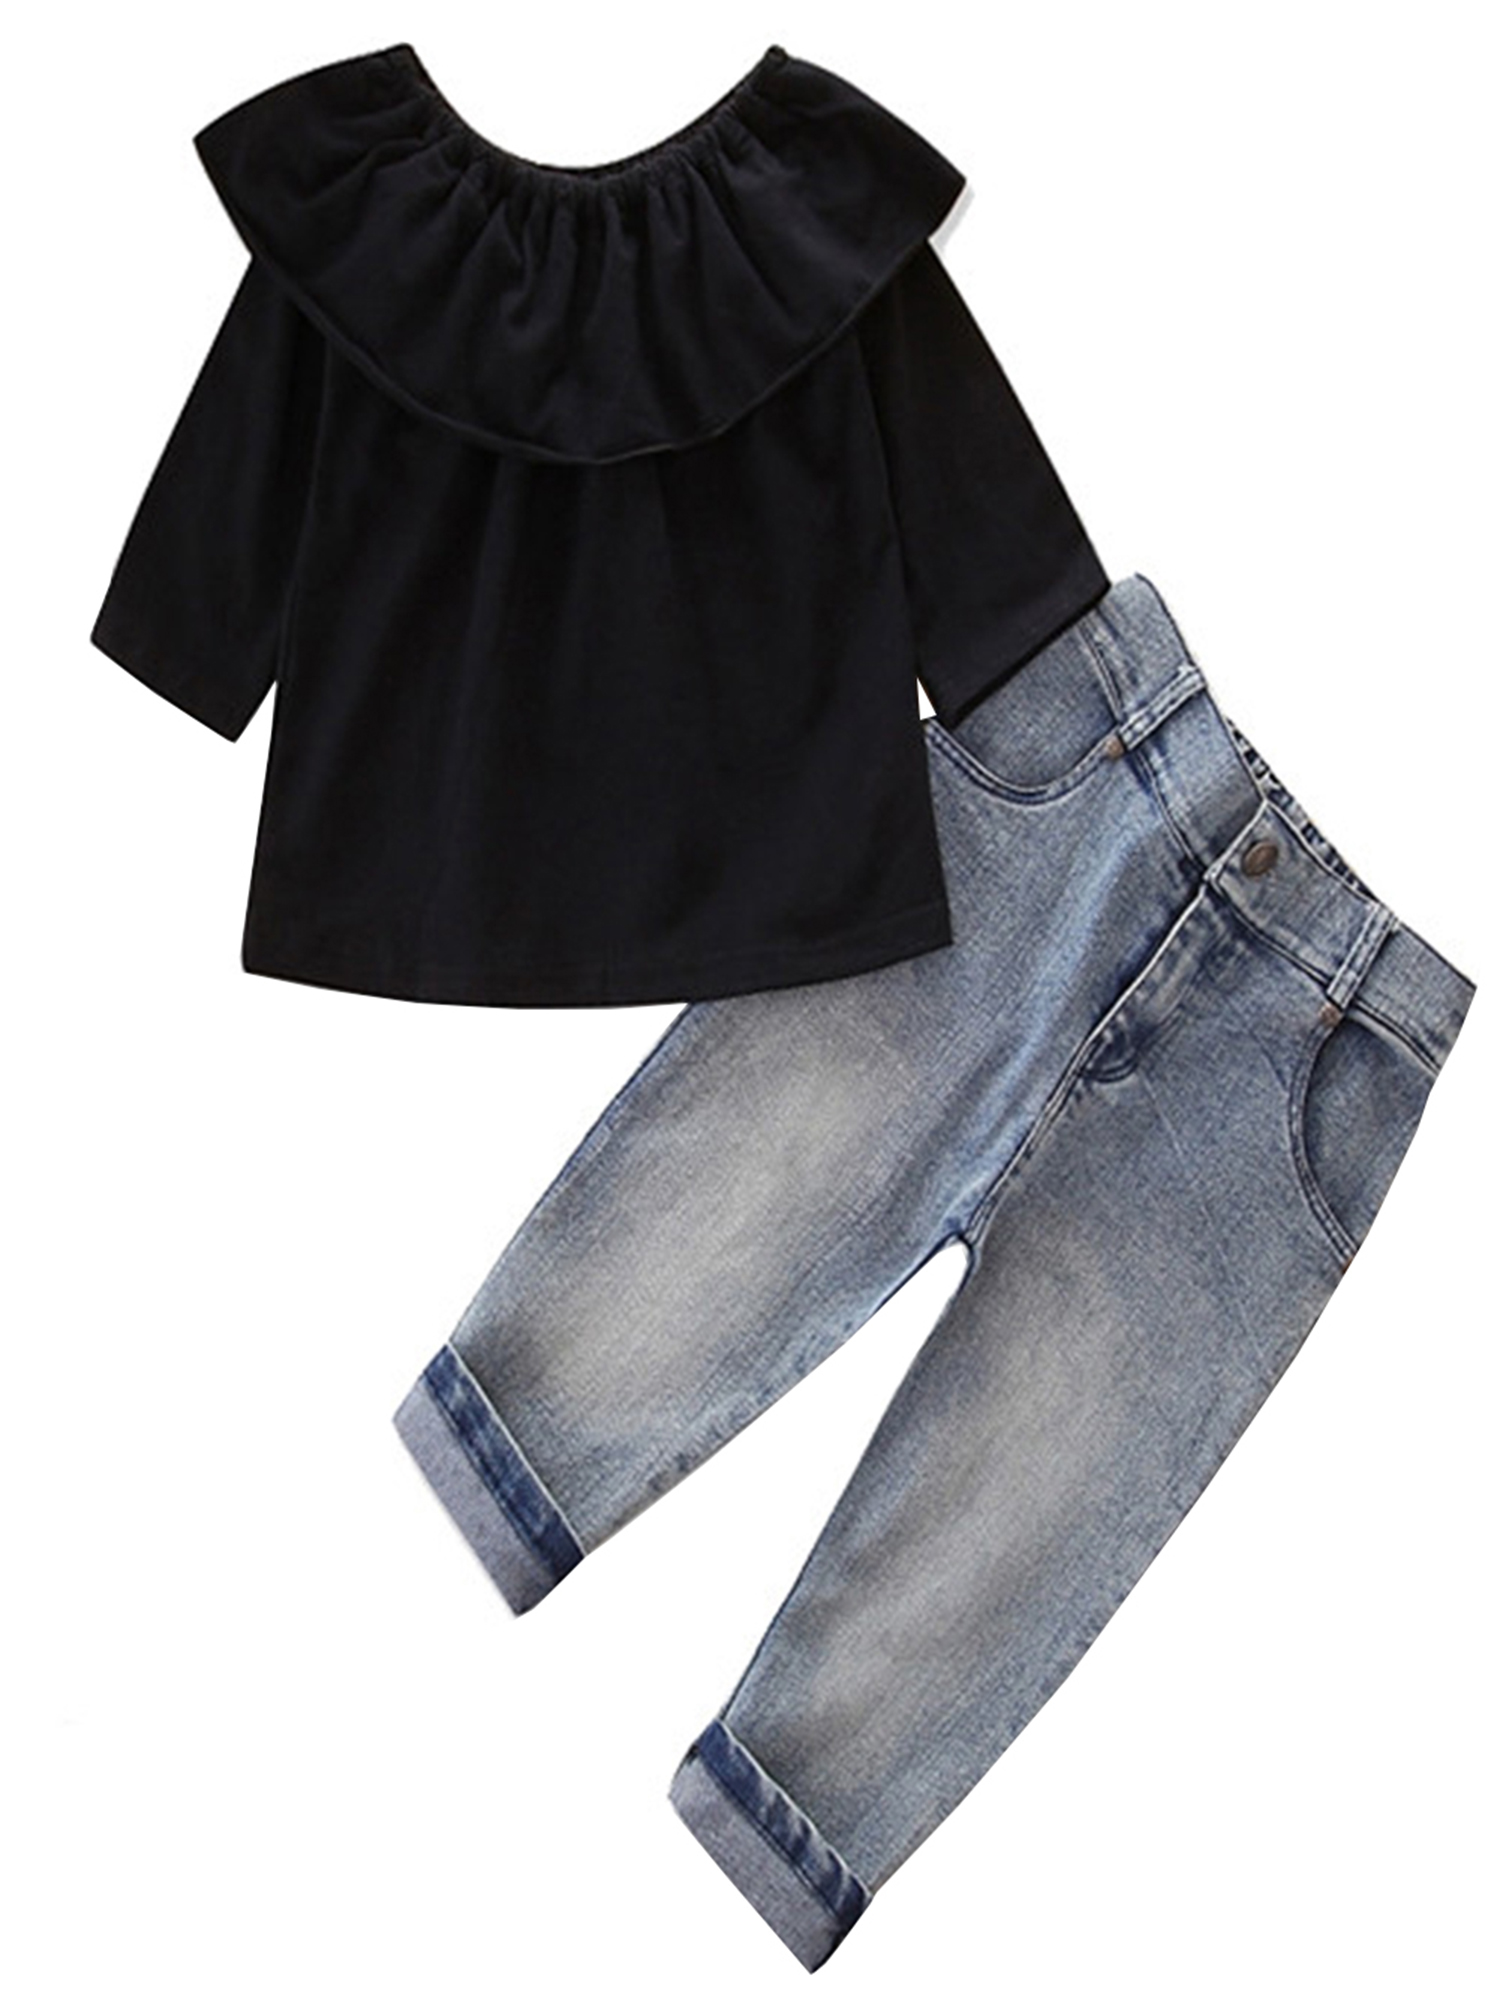 stylesilove Sweet Girl Solid Color Off-The-Shoulder Long Sleeves Blouse and Light Wash Jean 2 Pcs Outfit Set (3T, Black)